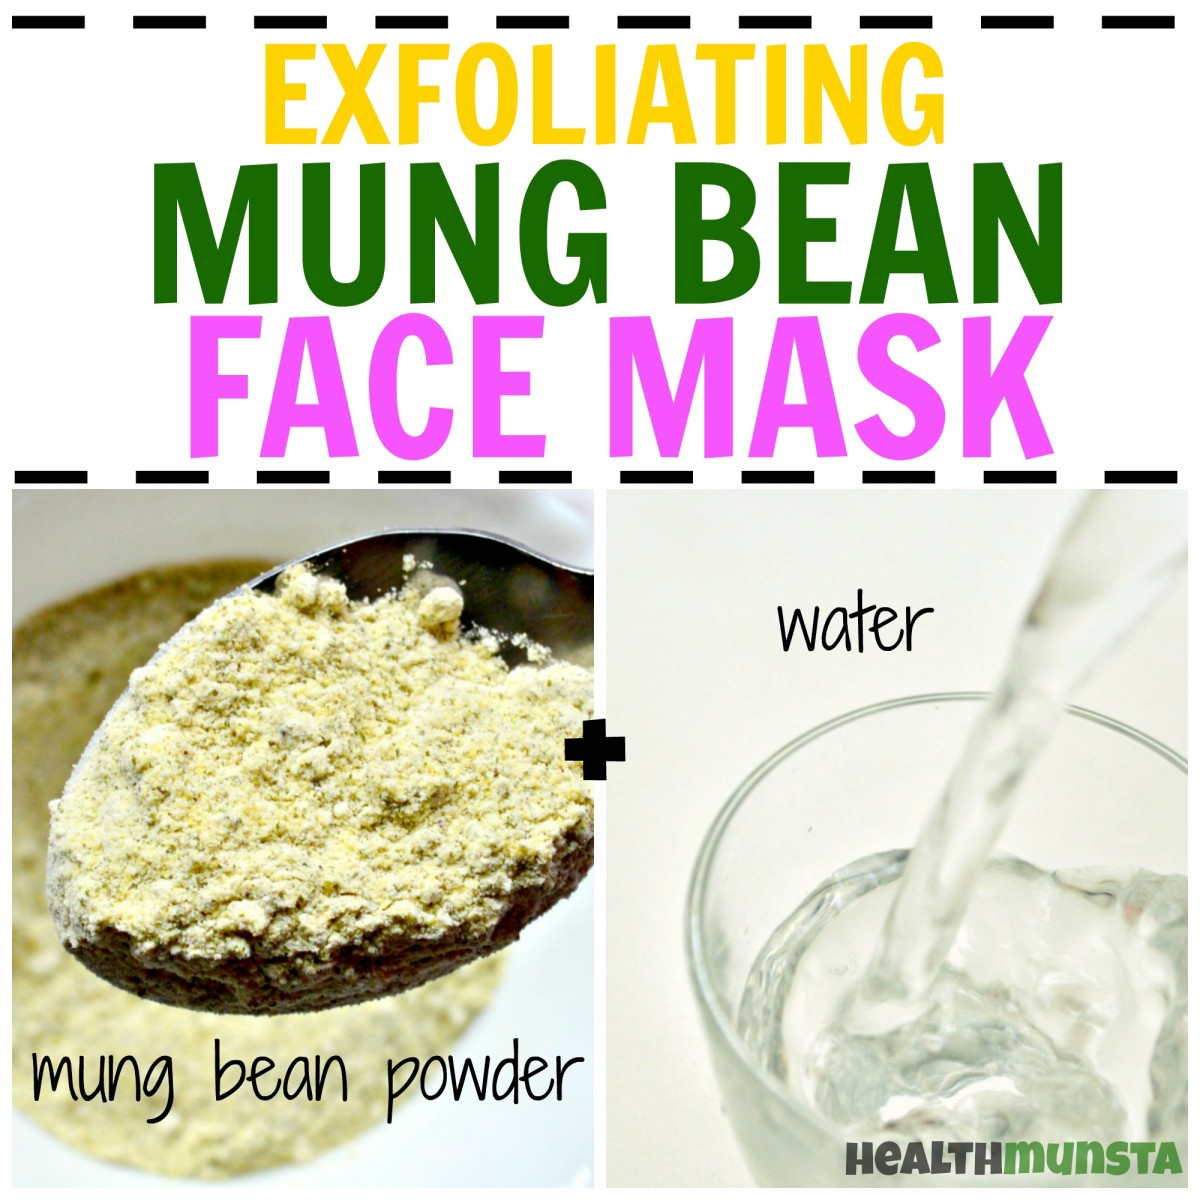 Simple but effective: Mix mung bean powder and water to form a paste that will gently exfoliate your skin